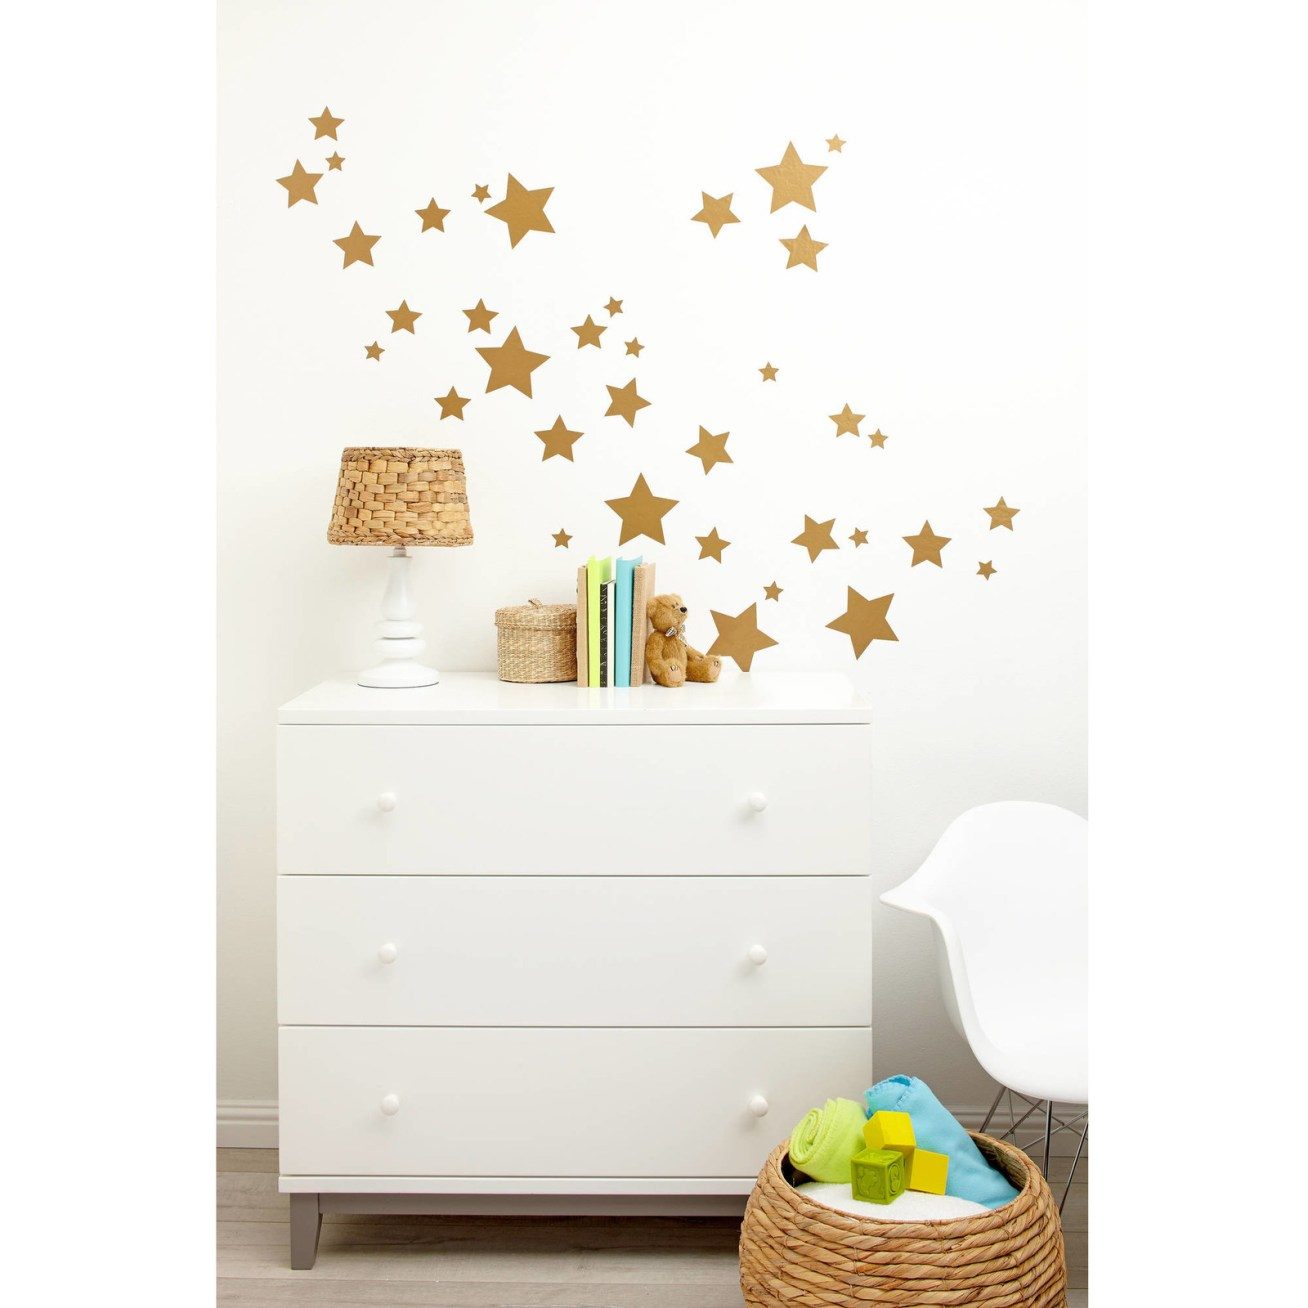 Includes three sheets with twelve stars of varying sizes each.Price: .90